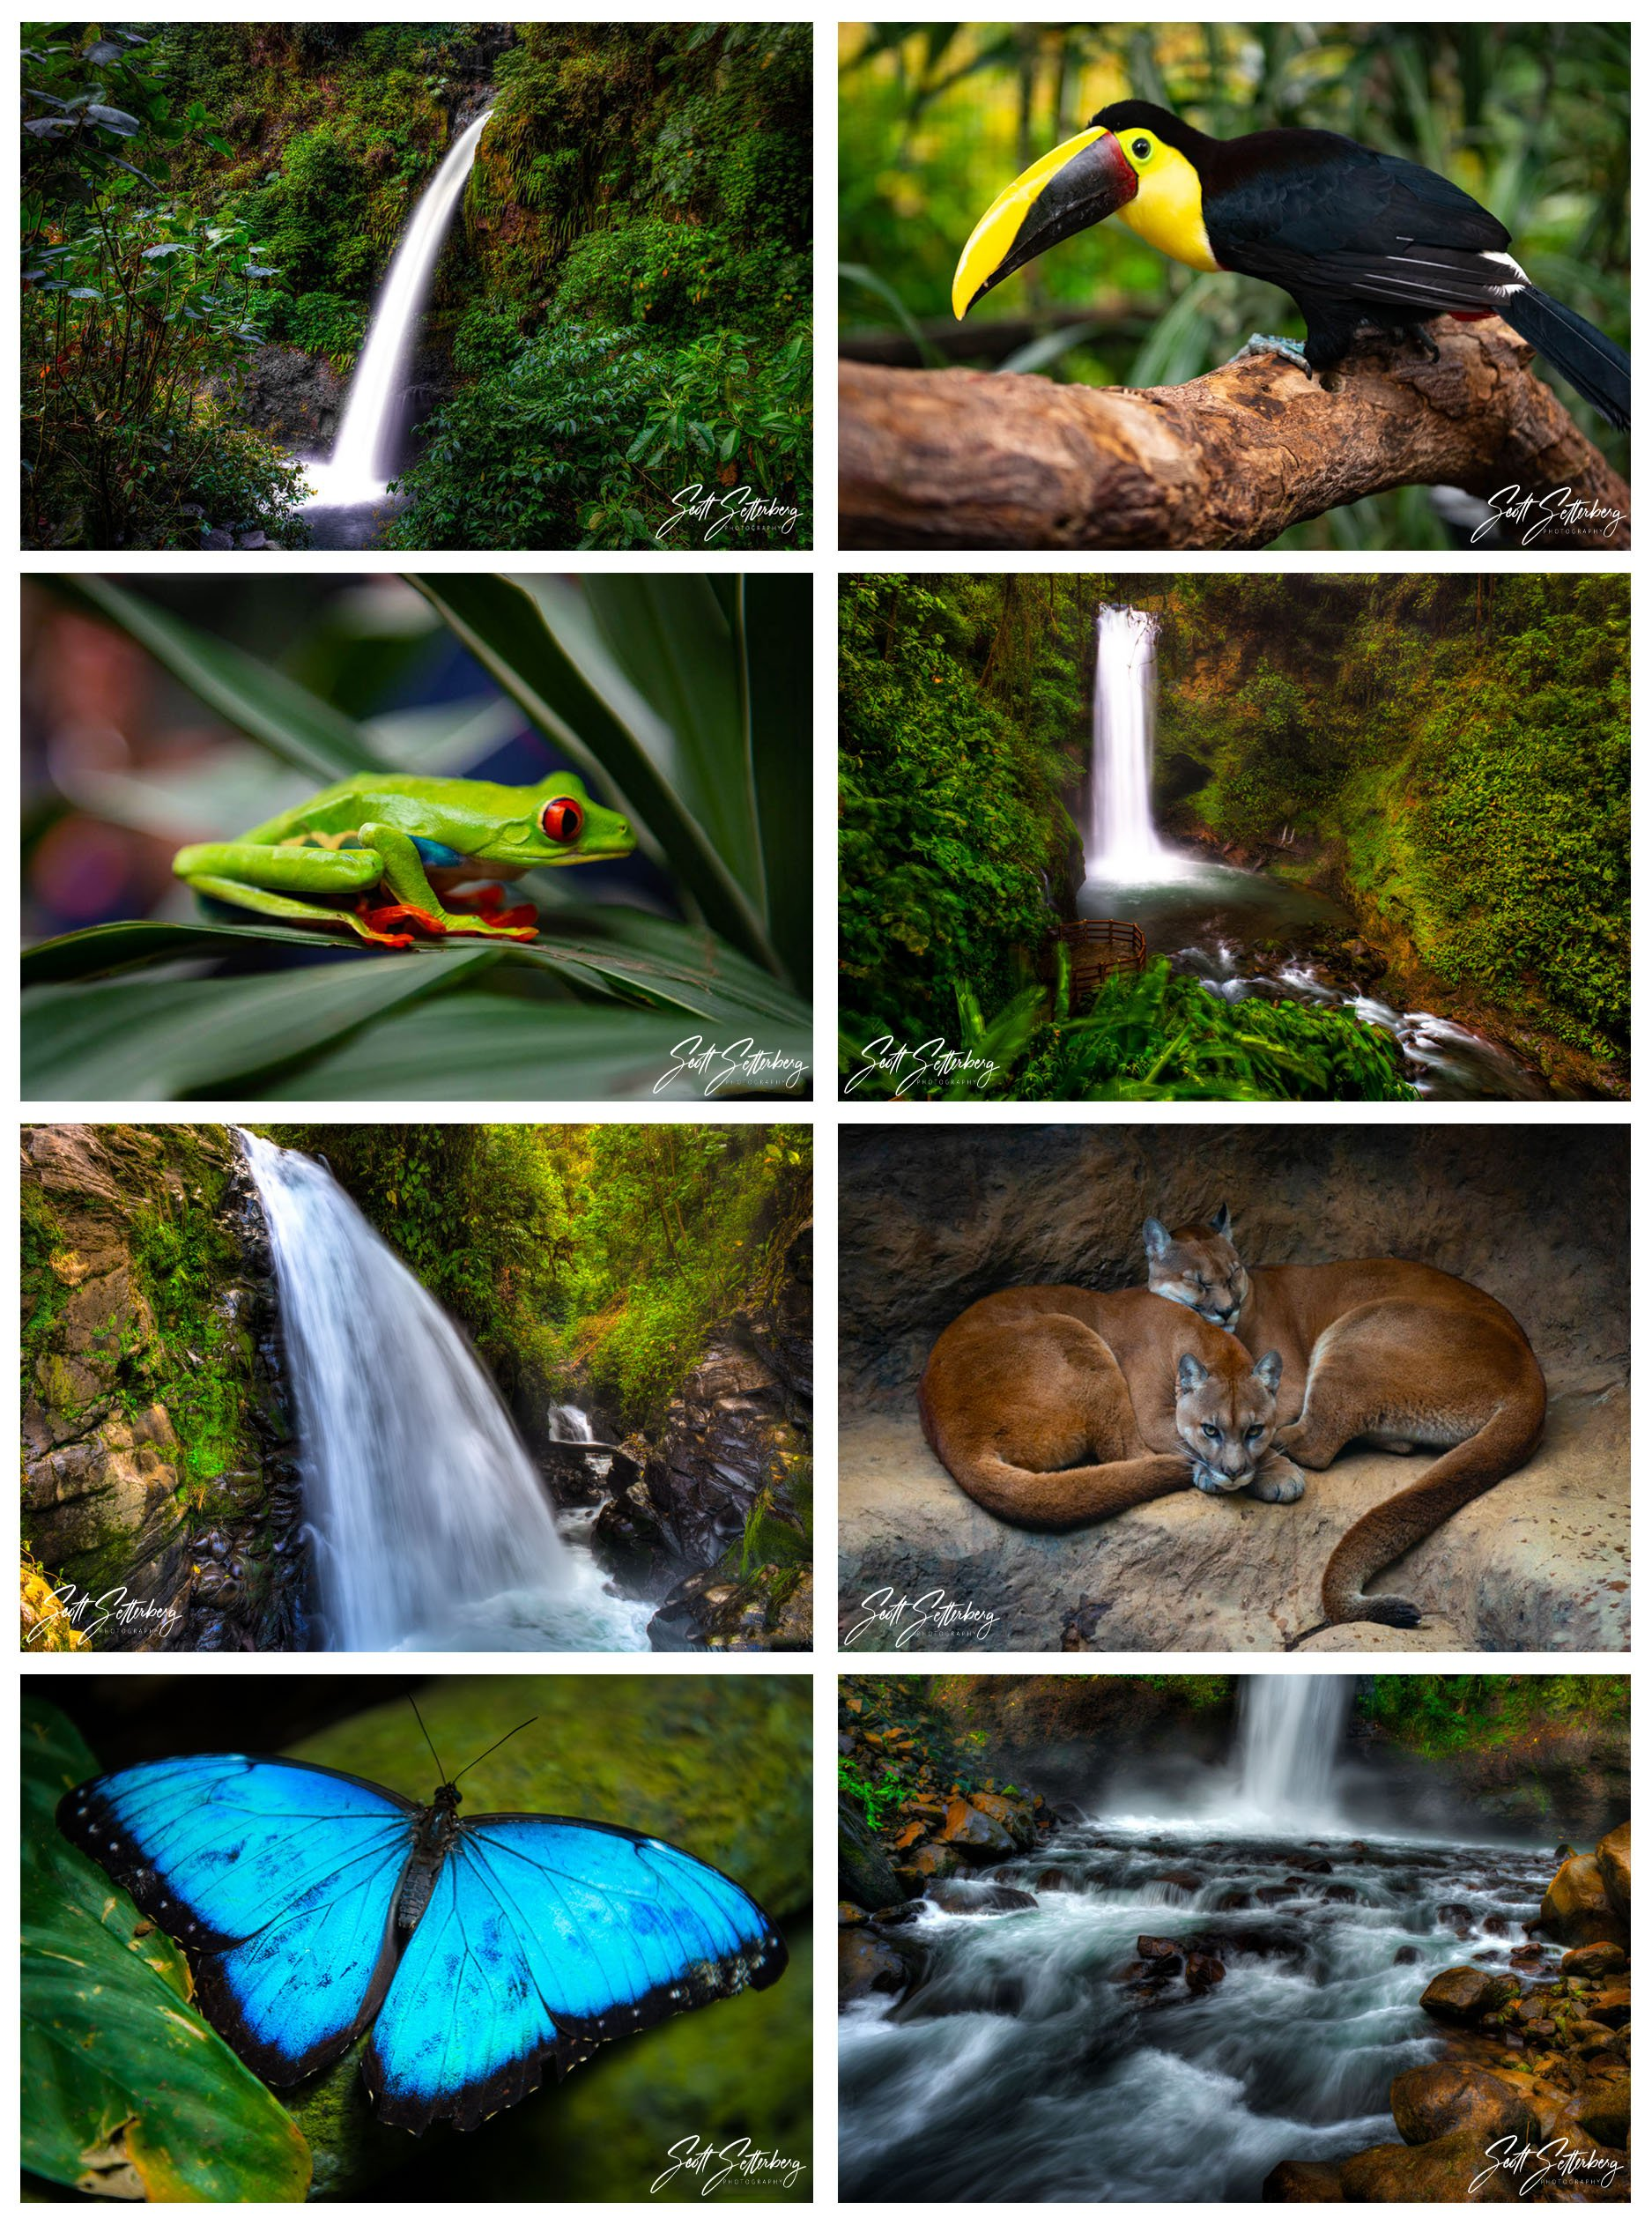 costa rica wildlife photography tips 1 image